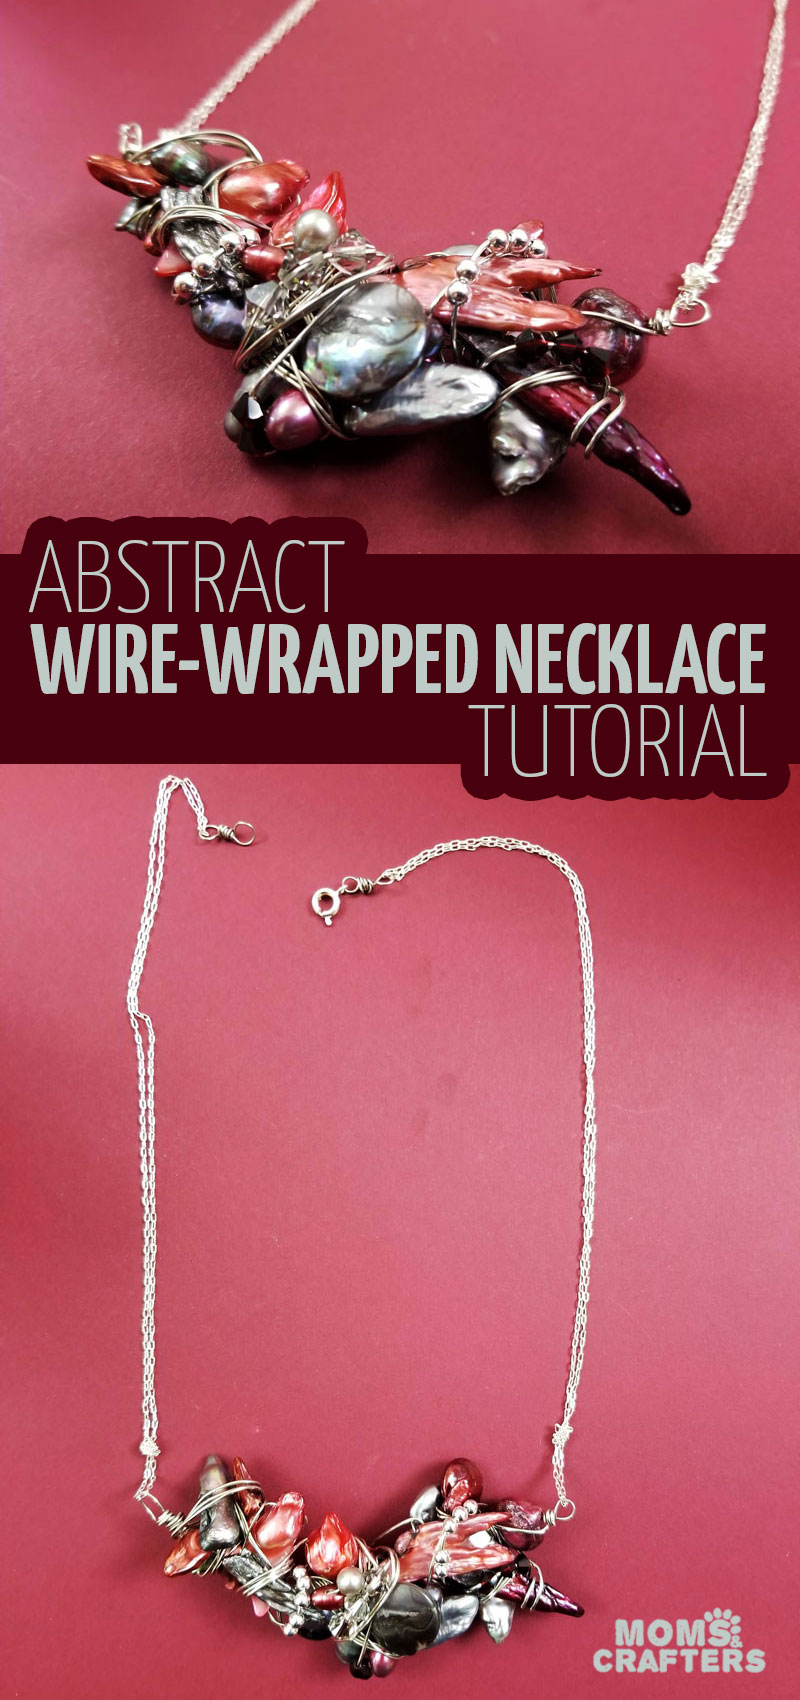 Click for a magnificent necklace wire wrap tutorial! This stunning abstract freshwater pearl stone and crystal DIY wire wrapping tutorial is a beautiful jewelry making idea and craft for the holidays or for bridesmaids too. #jewelrymaking #wirewrap #weddings